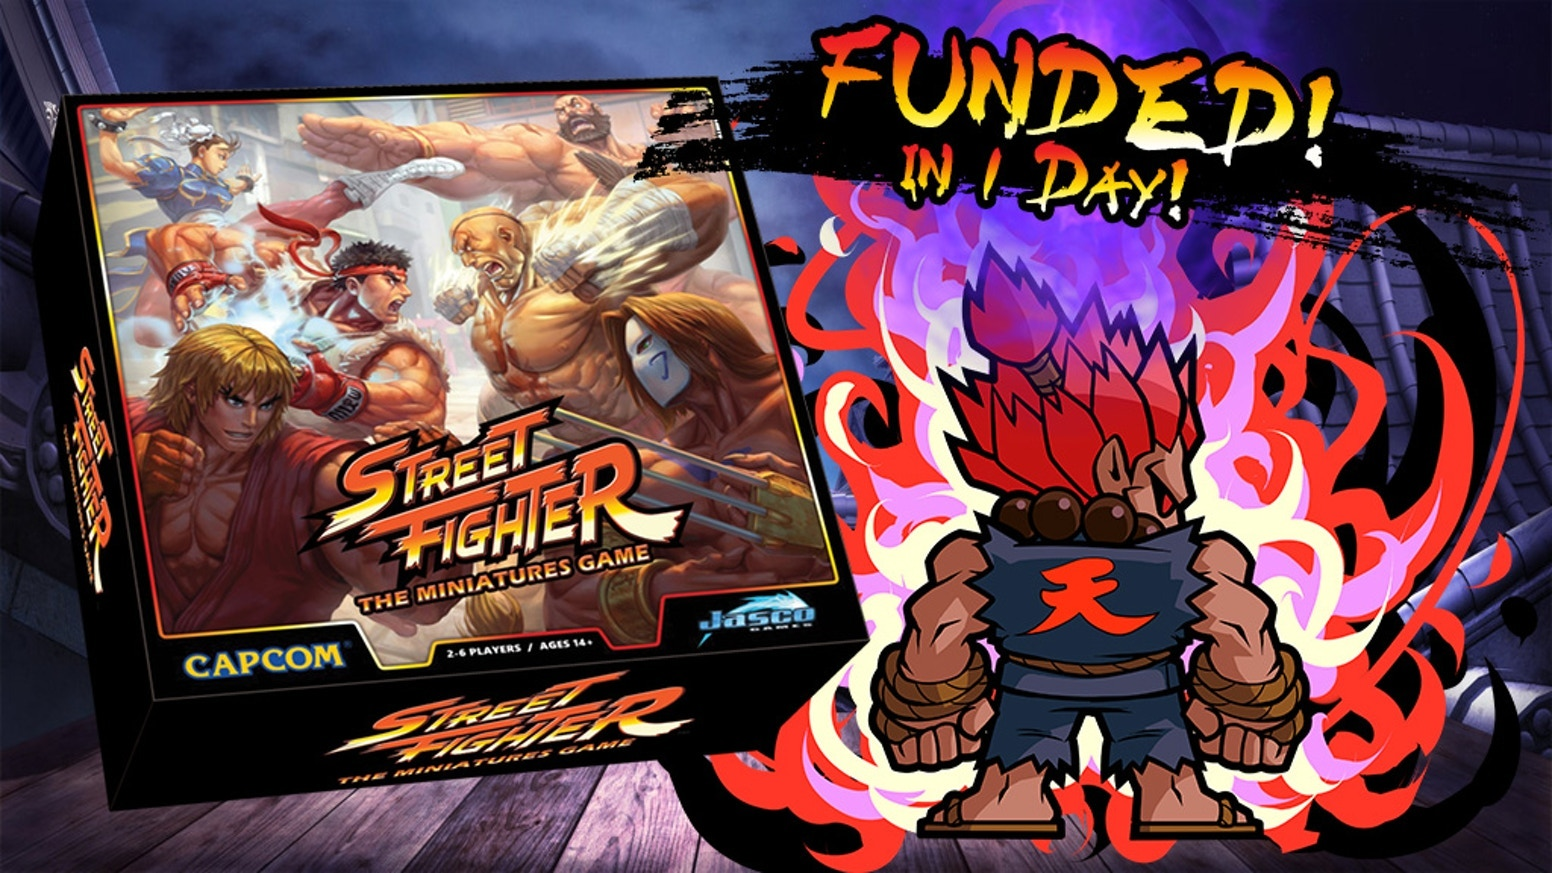 Street Fighter®™: The Miniatures Game is an exciting new high quality pre-painted miniatures game!